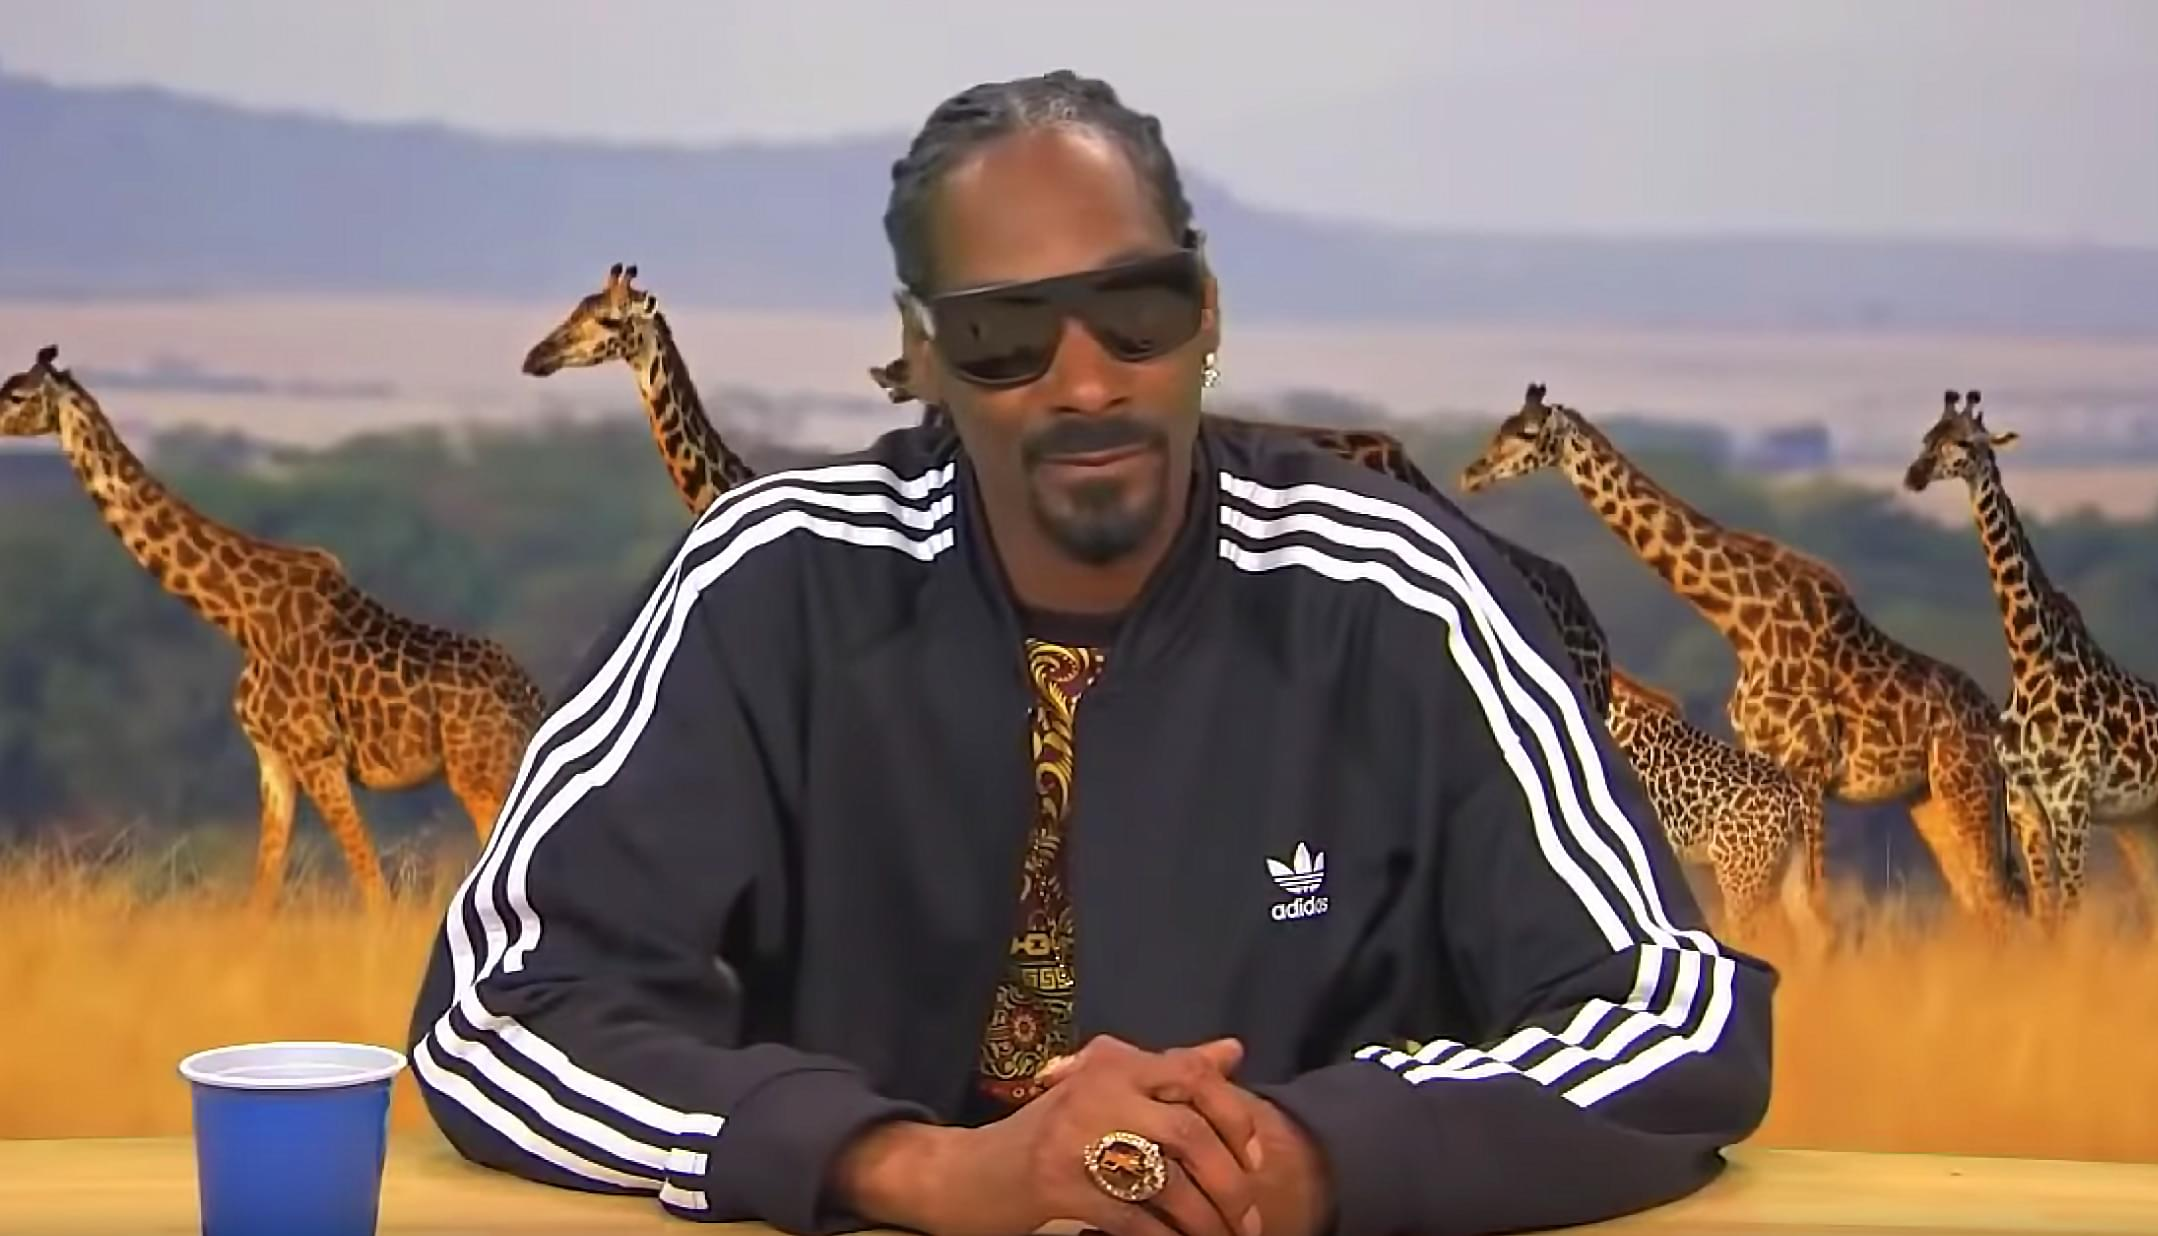 Snoop Dogg will headline the 2019 Illinois State Fair